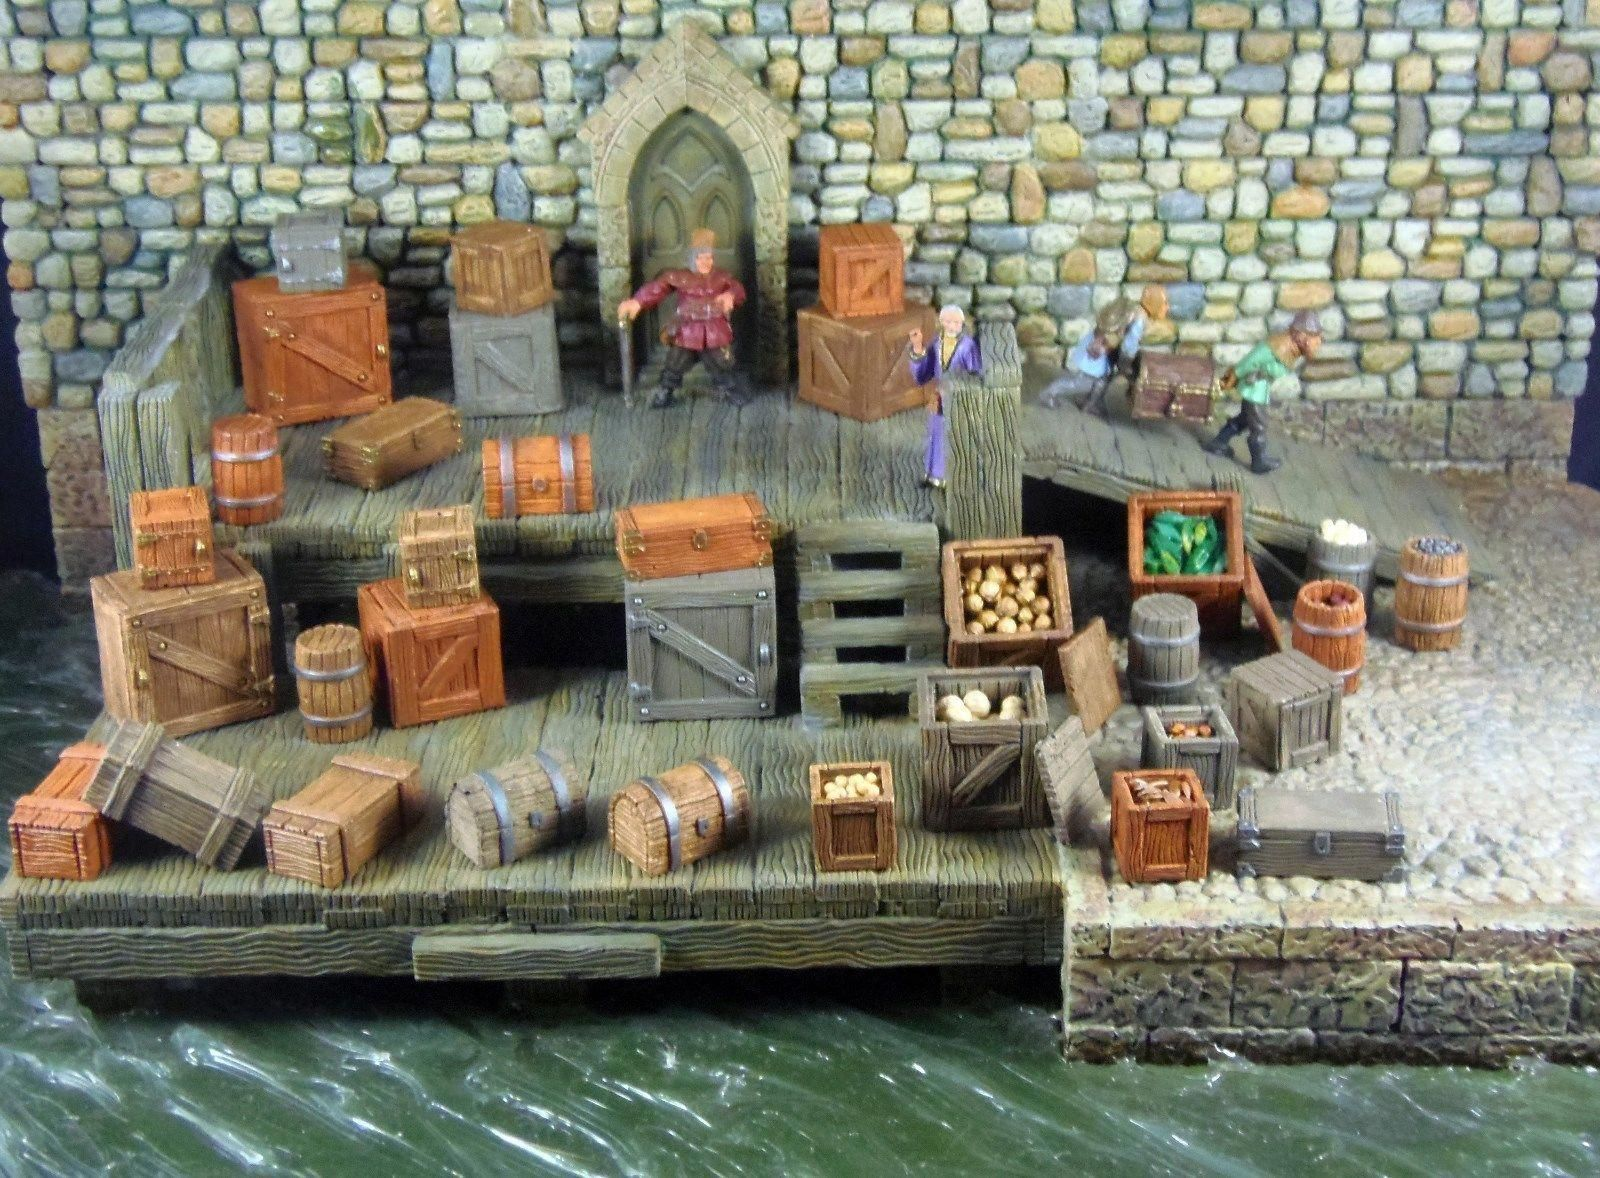 43++ Hobby and craft shops near me ideas in 2021